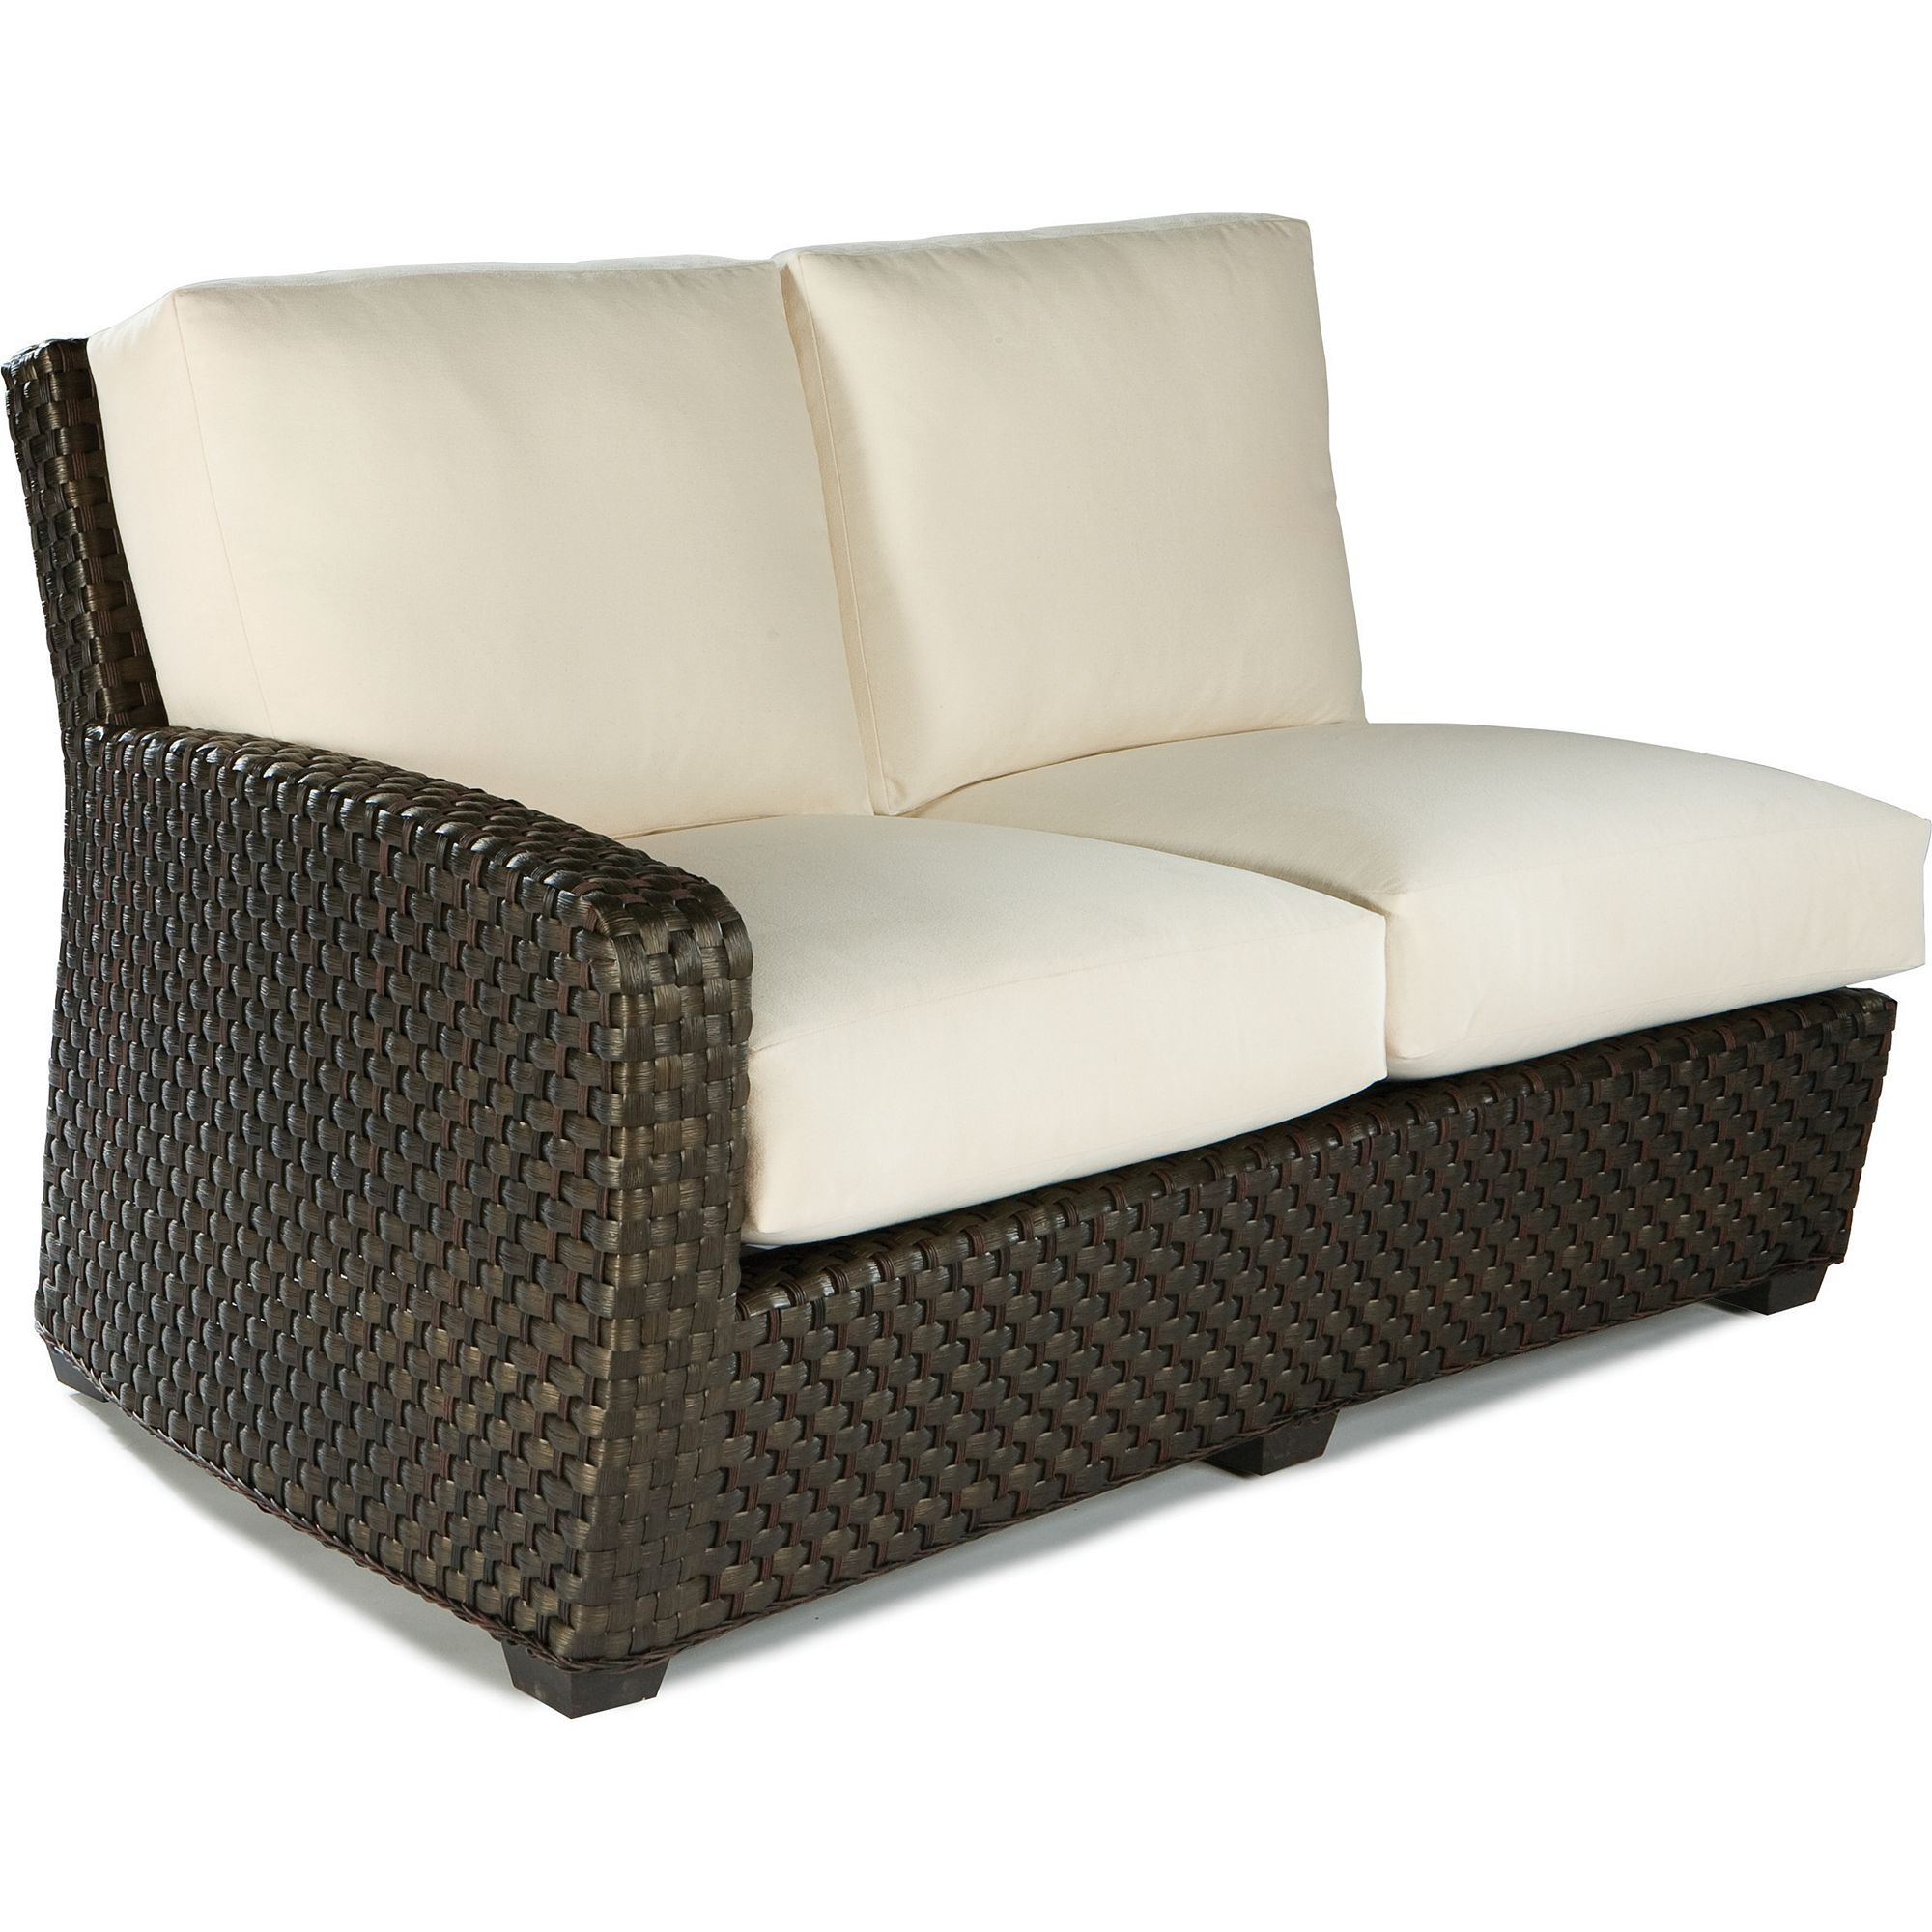 Admirable Leeward Outdoor Wicker Lf One Arm Loveseat Sofas And Pabps2019 Chair Design Images Pabps2019Com